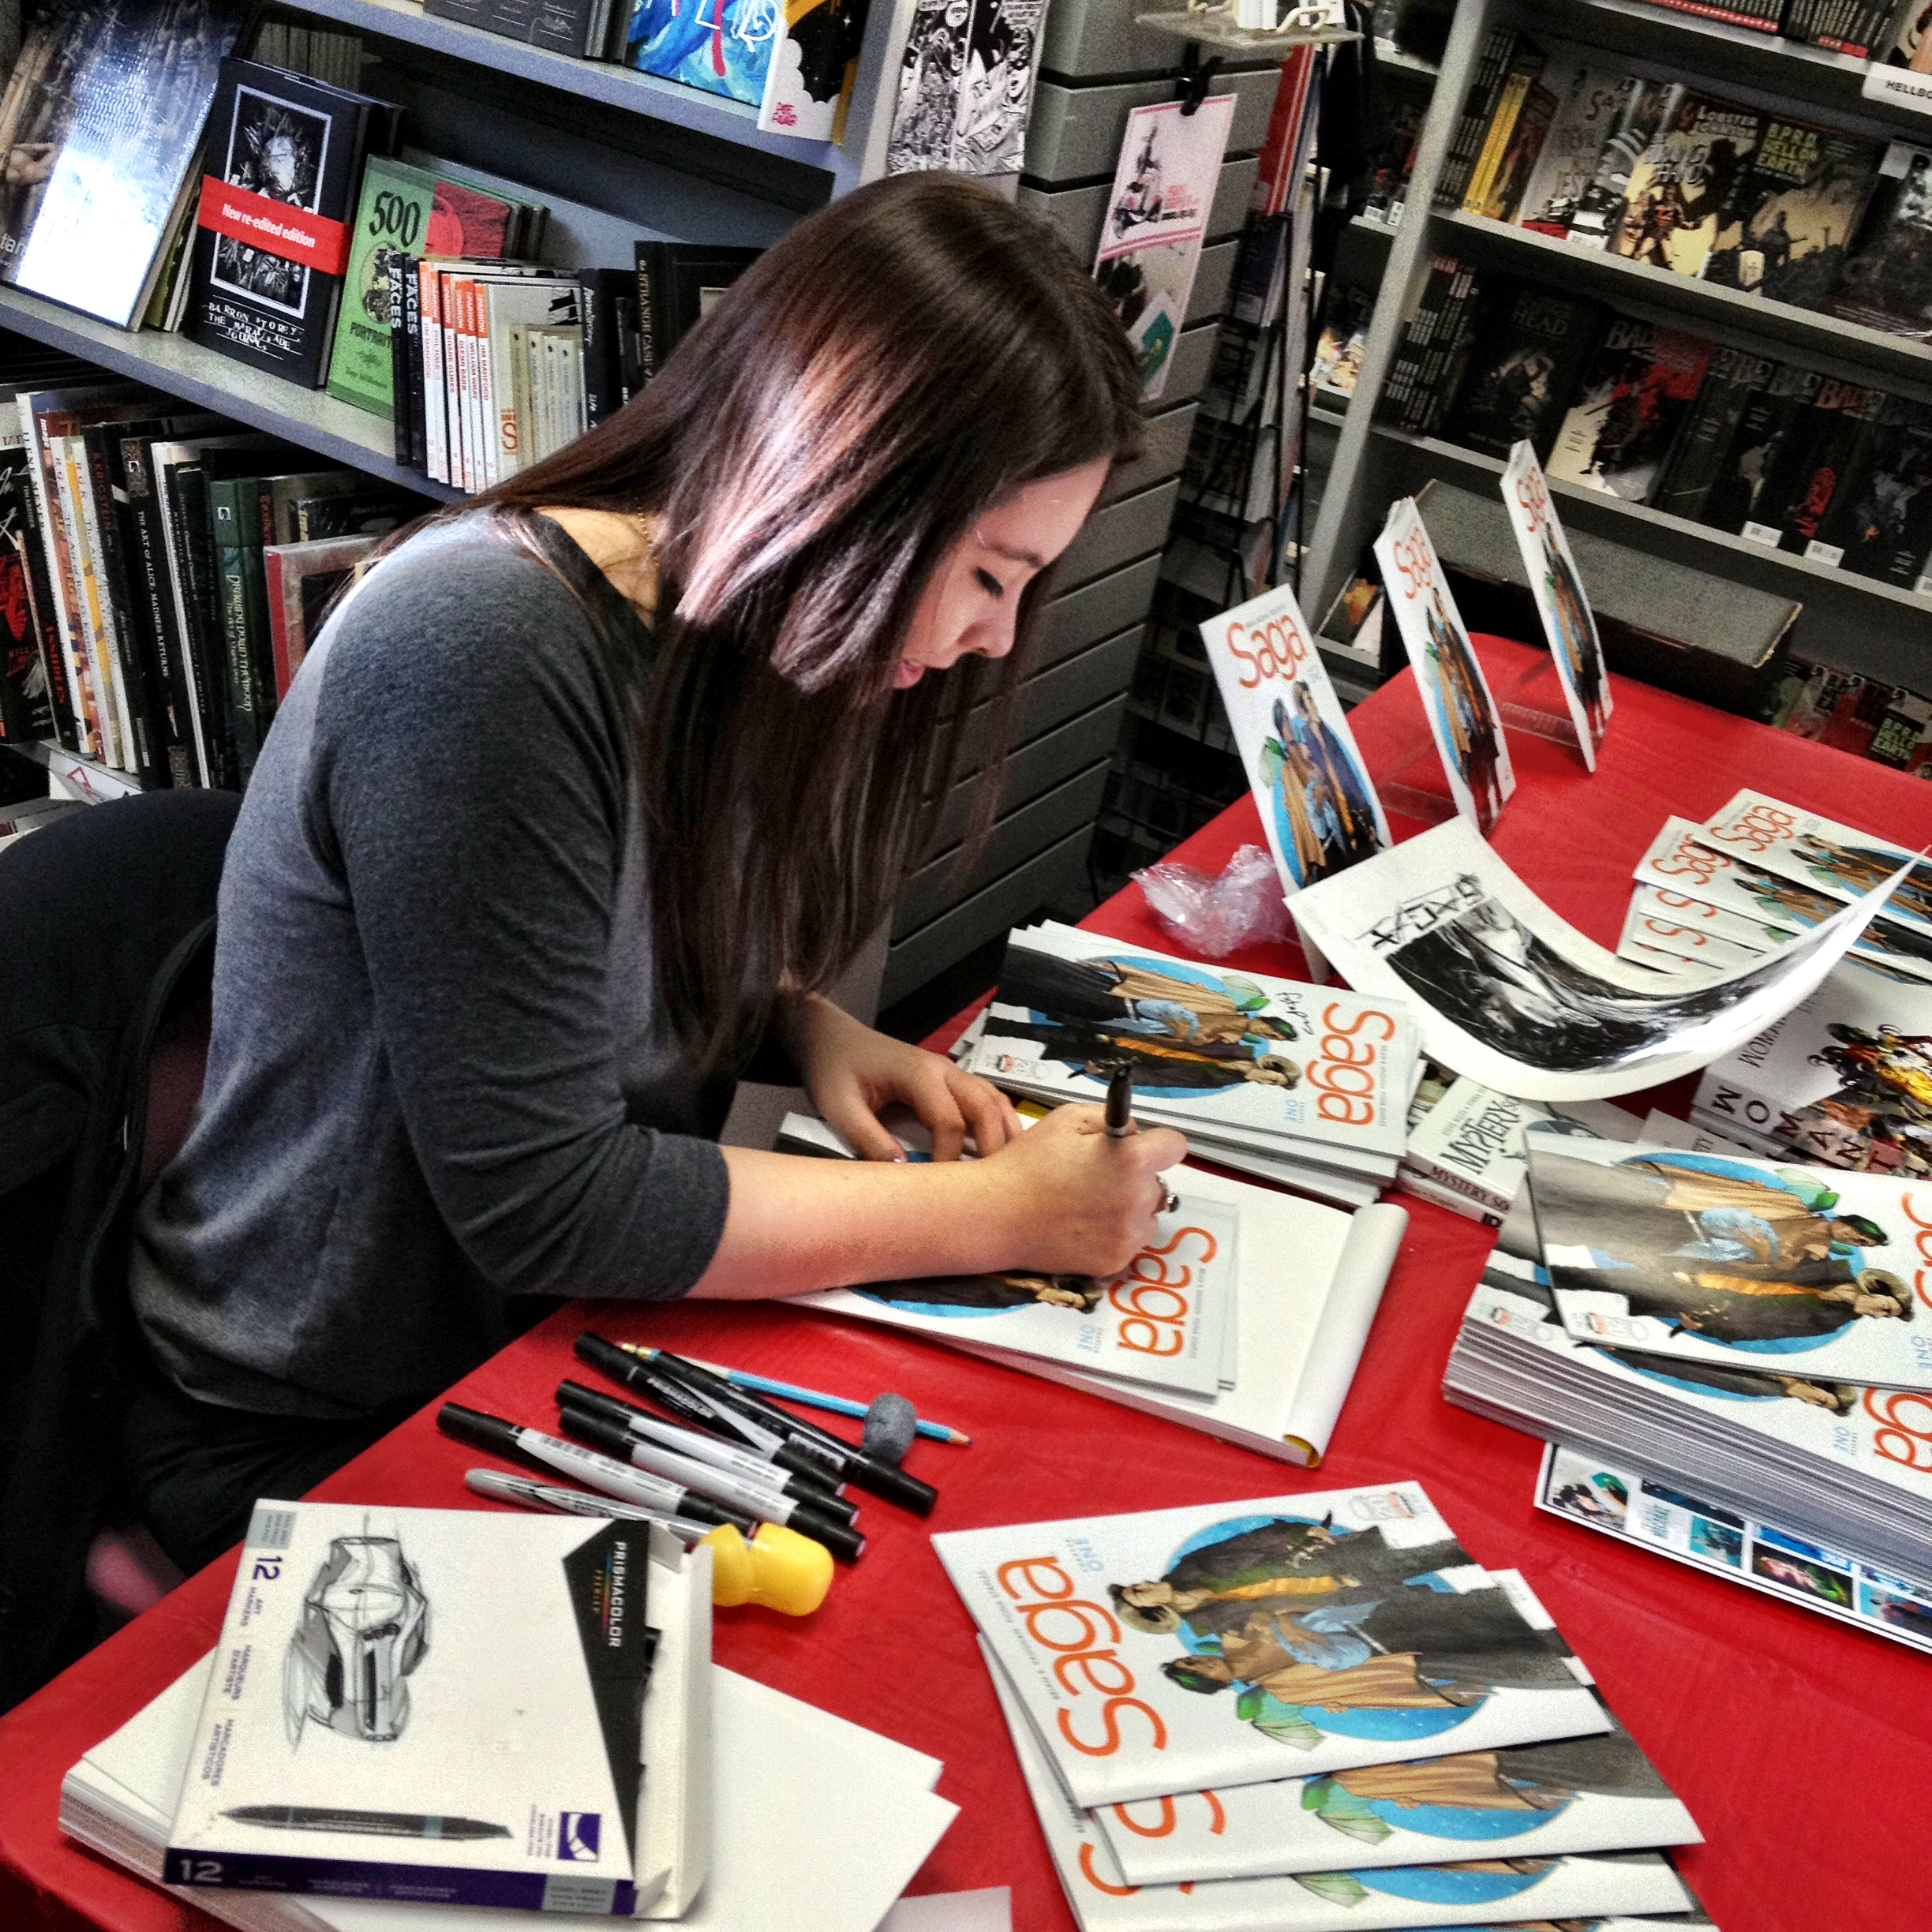 Fiona Staples signing 'Another Dimension' comics. Image from Wikimedia Commons.